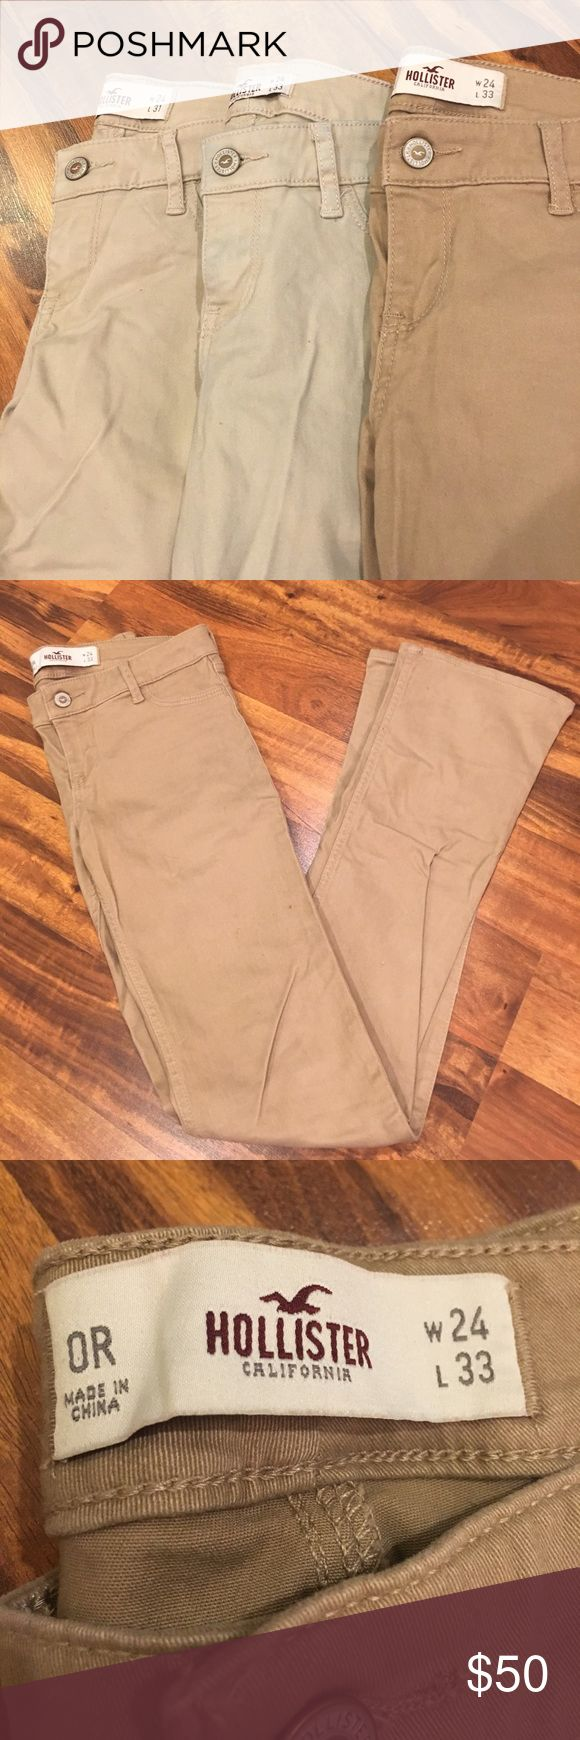 Lot of (3) Hollister khakis size 0r 3 Hollister khakis in size 0 regular. One deep tan and two light tans. Two boot cuts and one skinny pair. Gently worn. Only air dried. Hollister Jeans